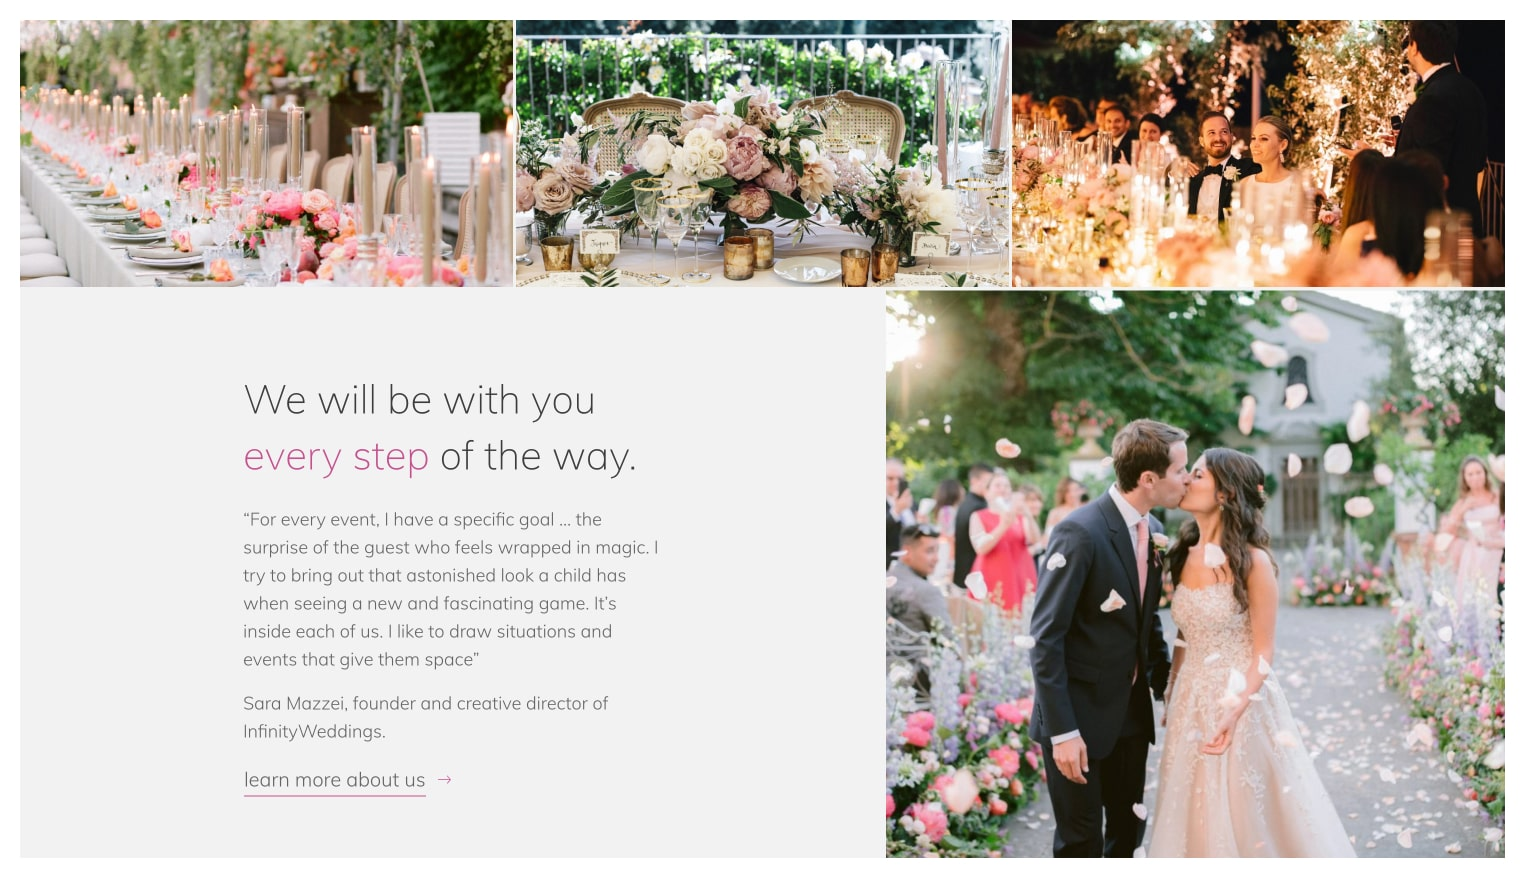 Sito web Infinity Weddings